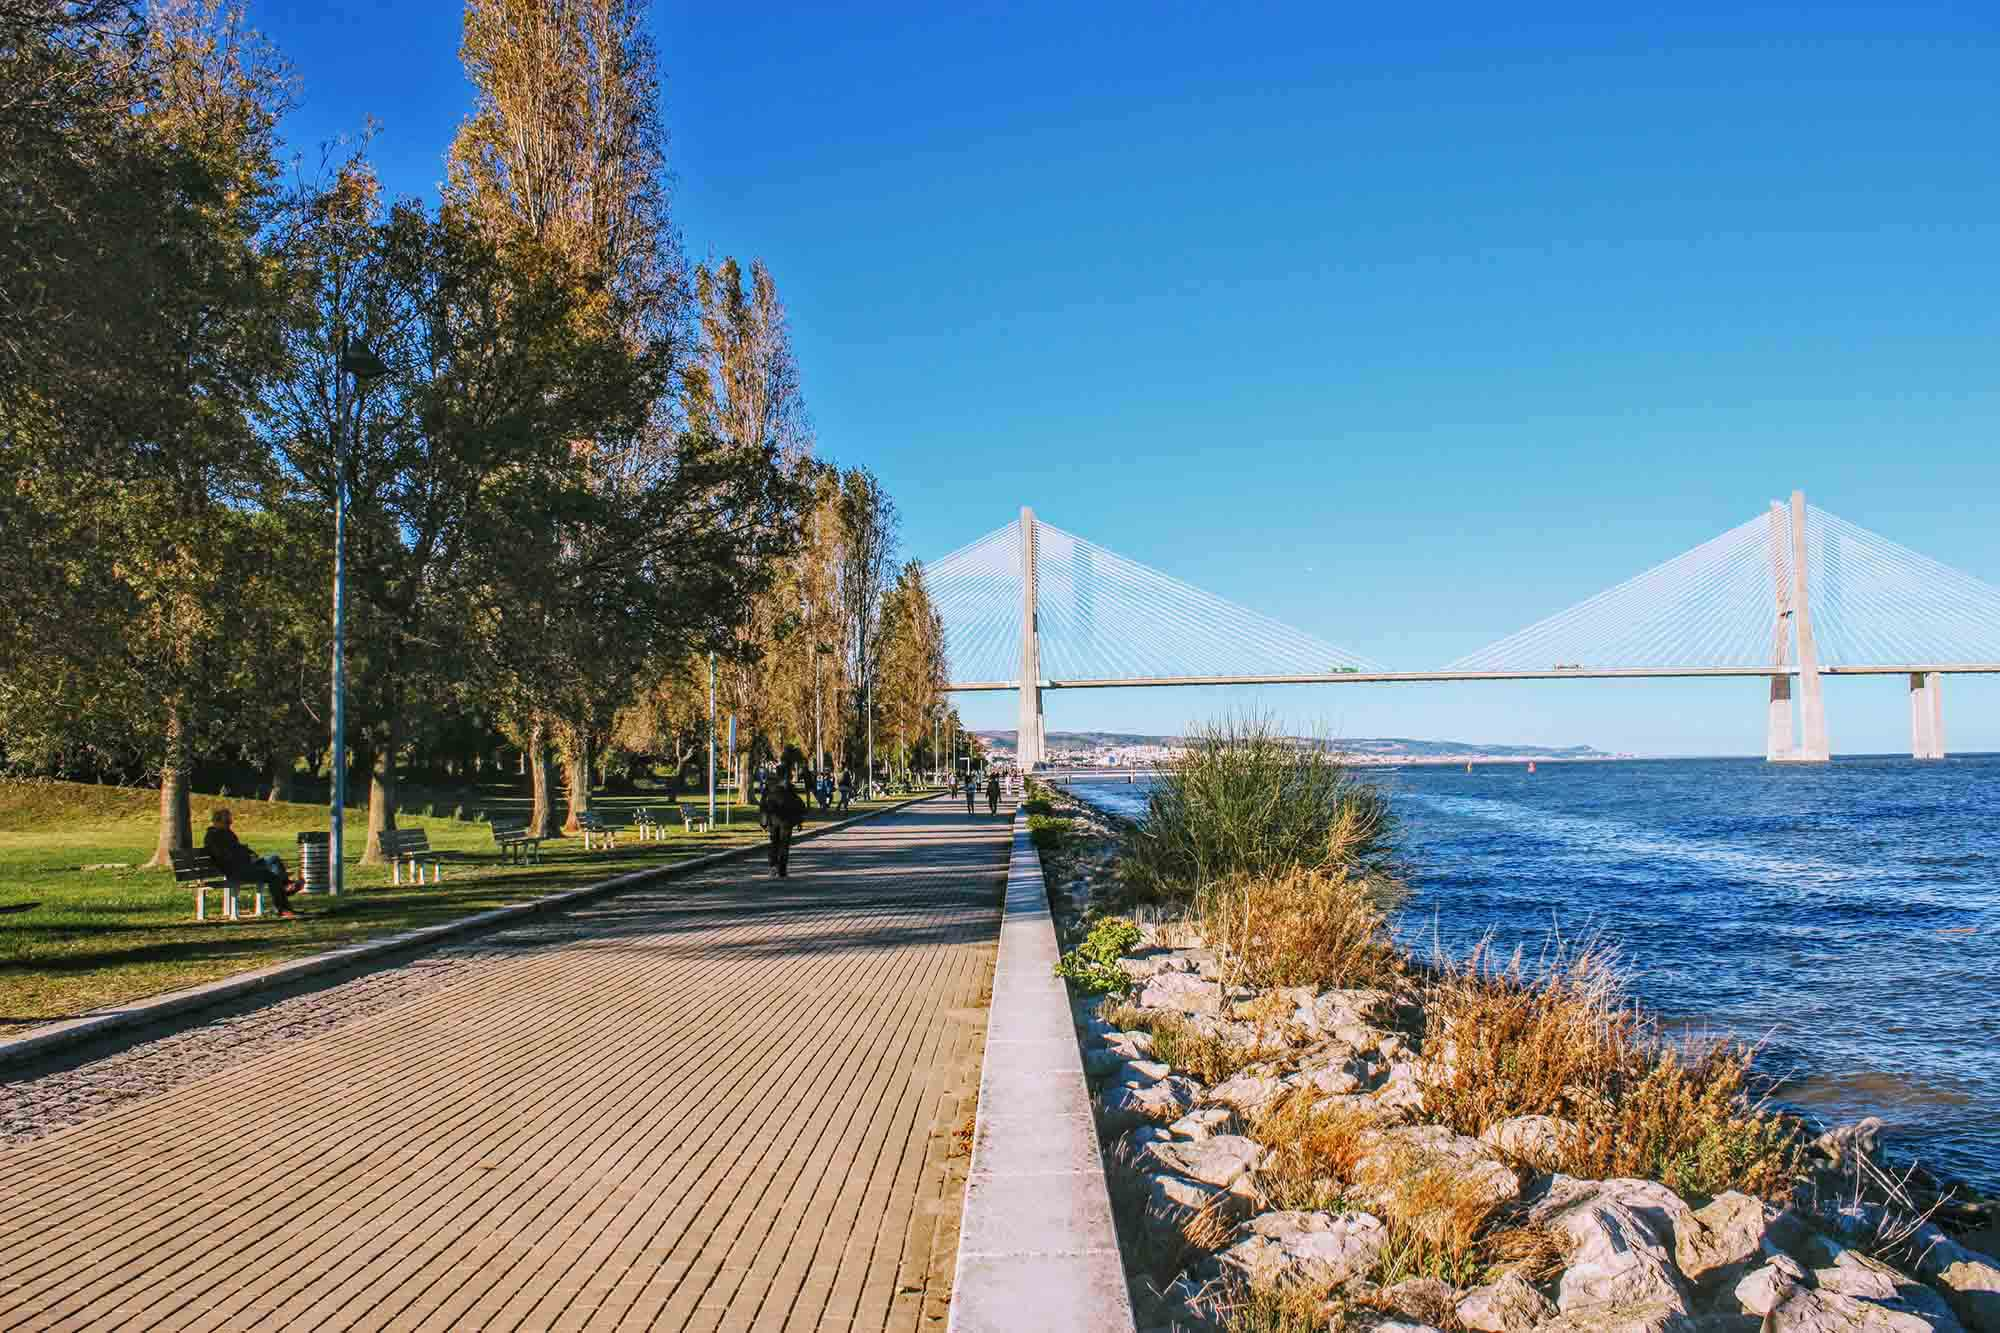 boardwalk at parque das nacoes